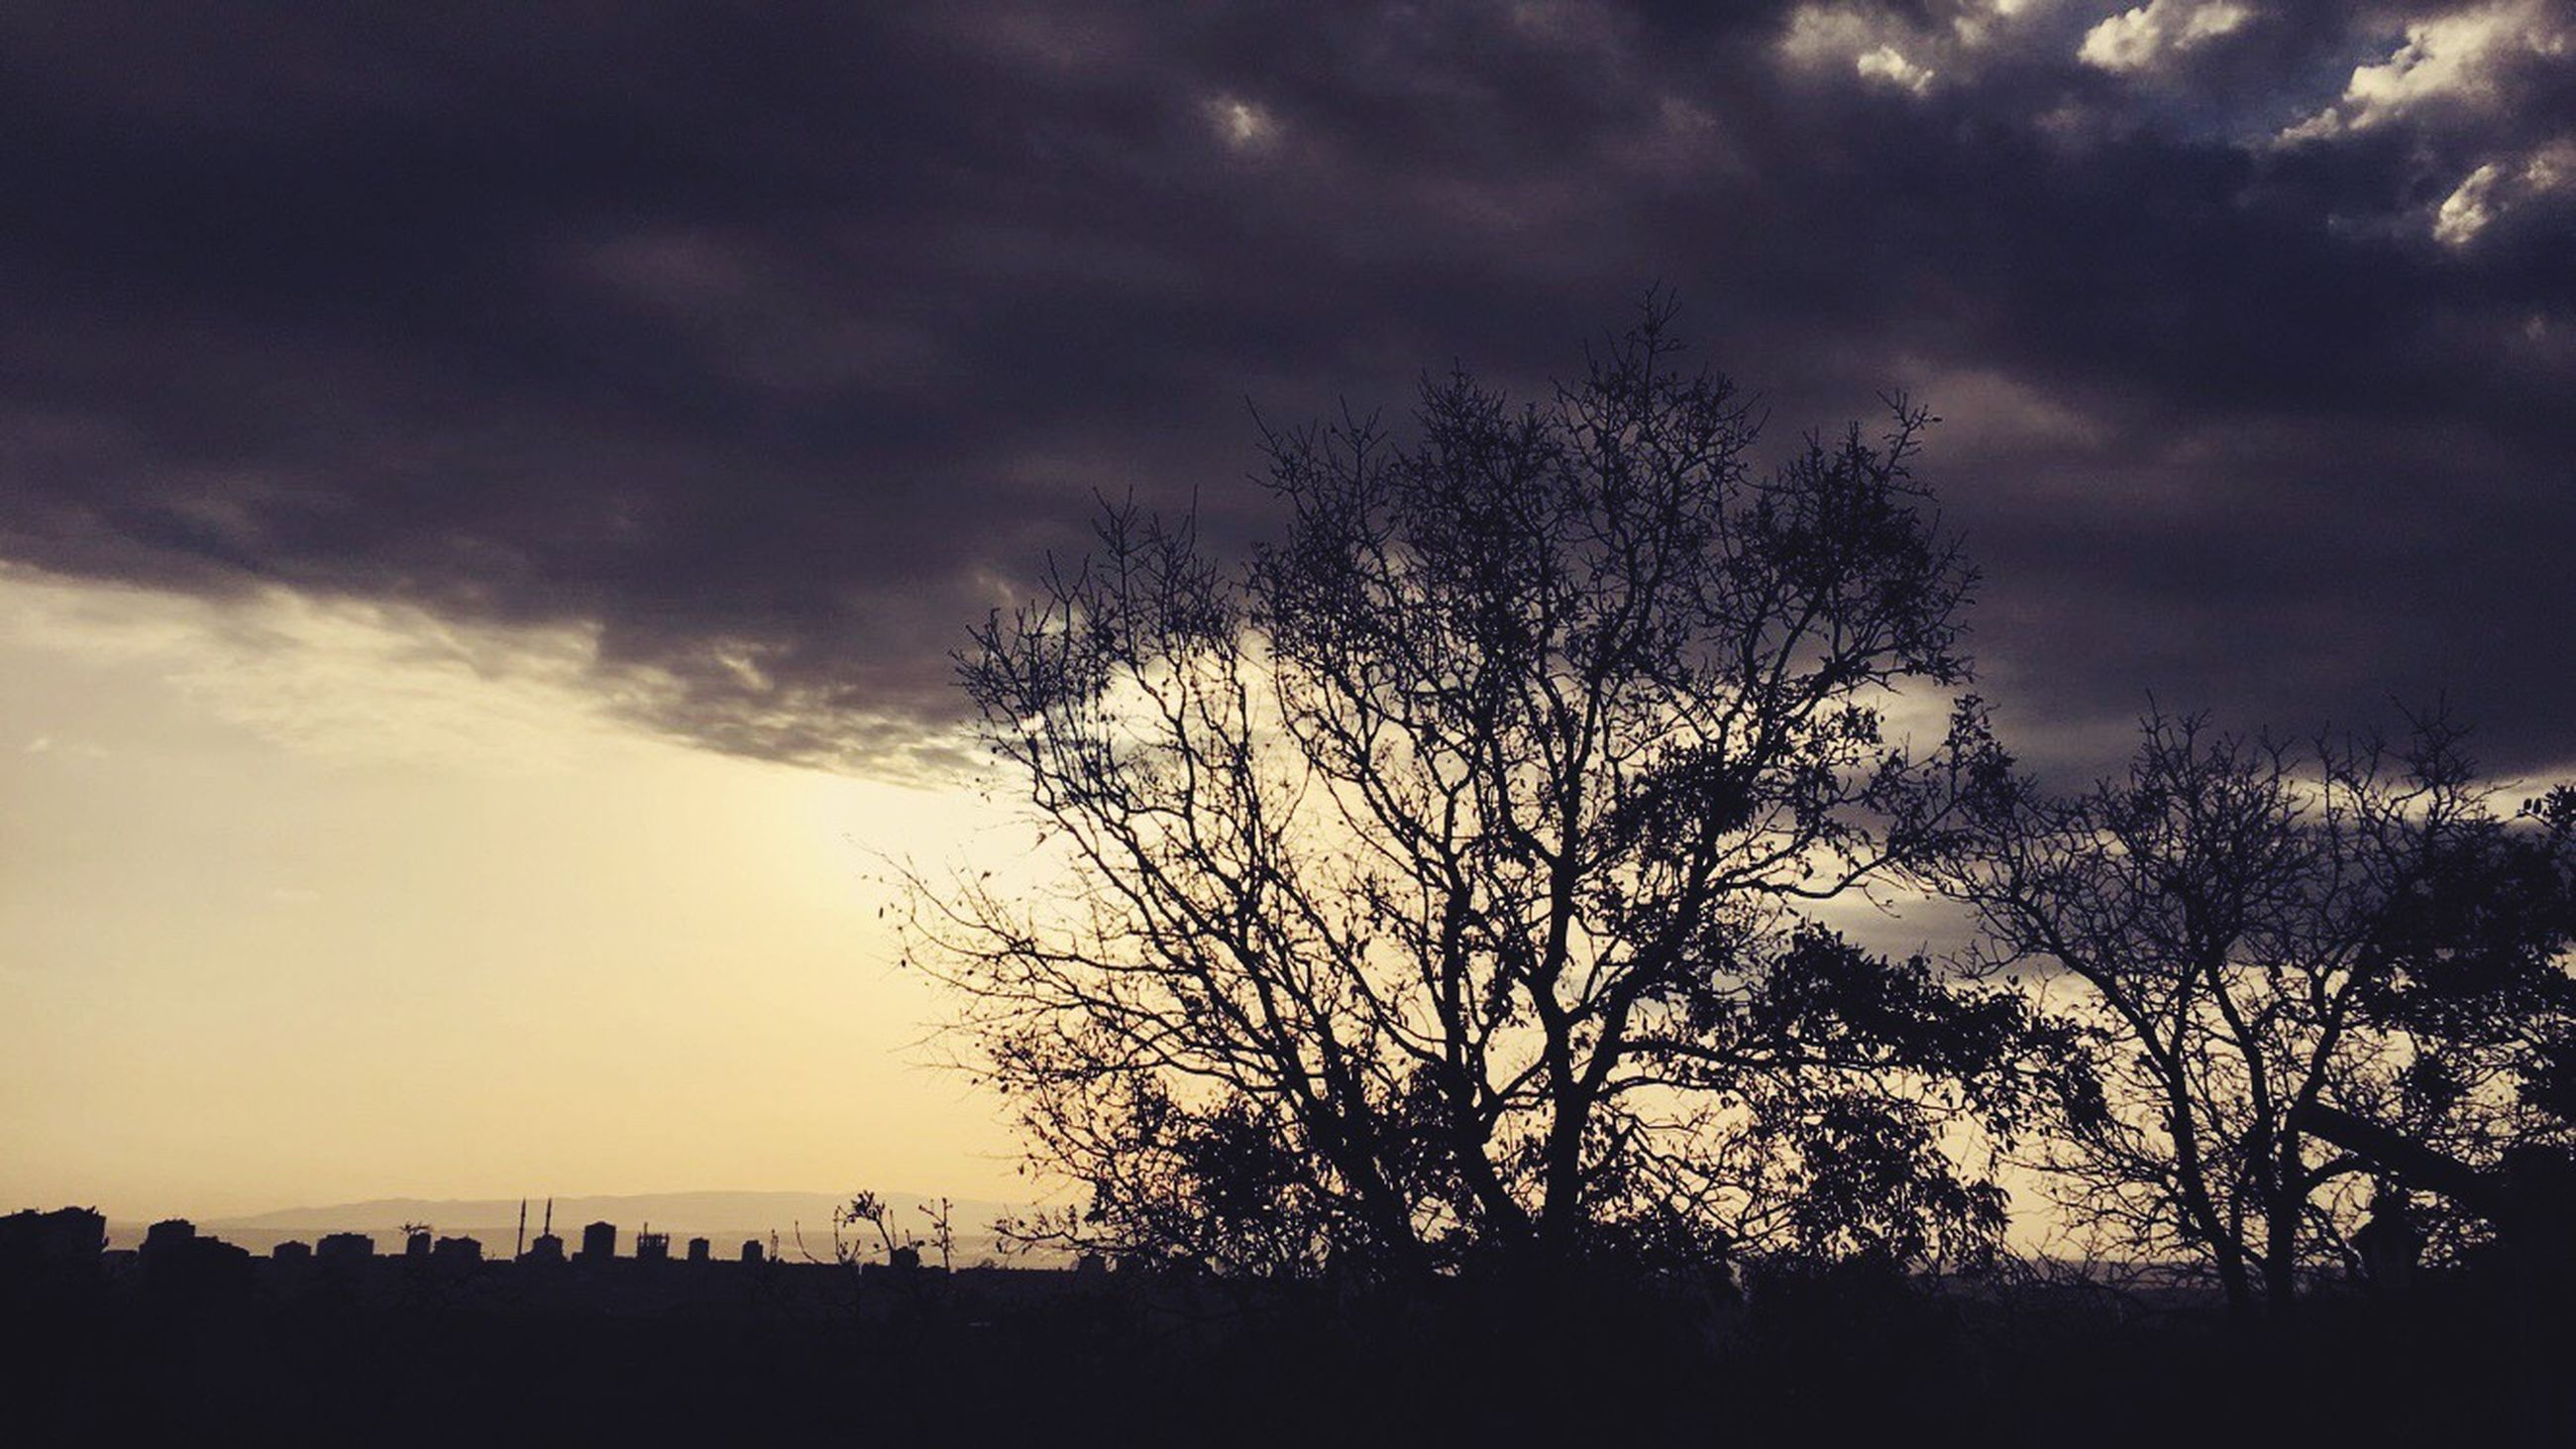 silhouette, sky, tree, sunset, tranquility, tranquil scene, beauty in nature, scenics, cloud - sky, bare tree, nature, landscape, branch, cloudy, cloud, idyllic, field, dusk, low angle view, dramatic sky